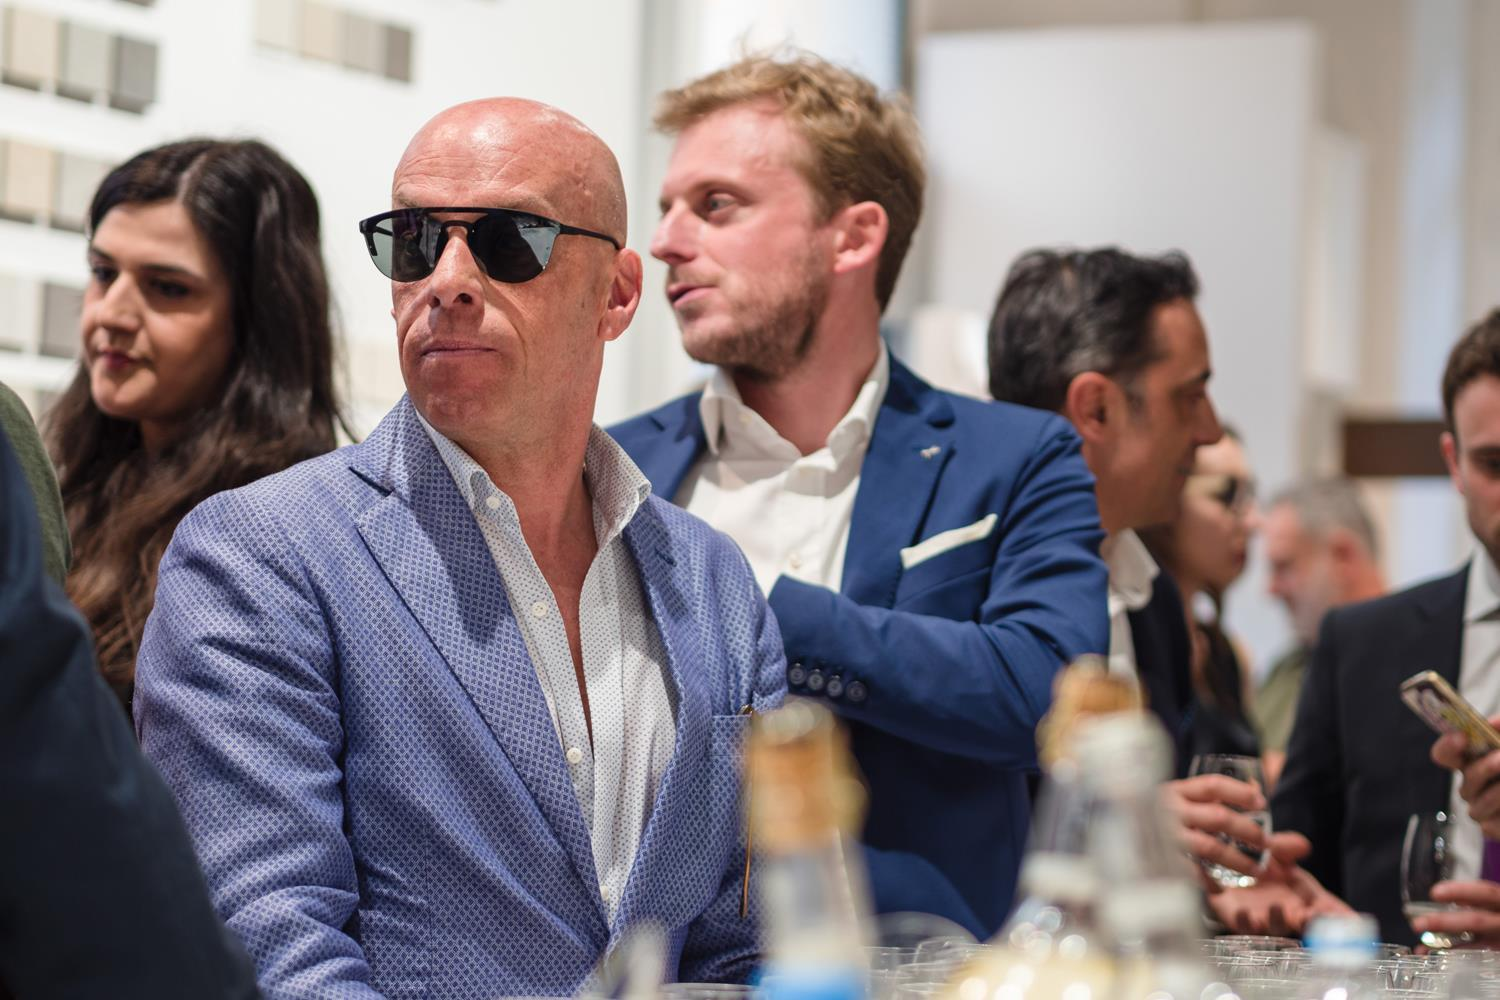 Cotto d'Este at the Fuorisalone - Night out: Photo 22